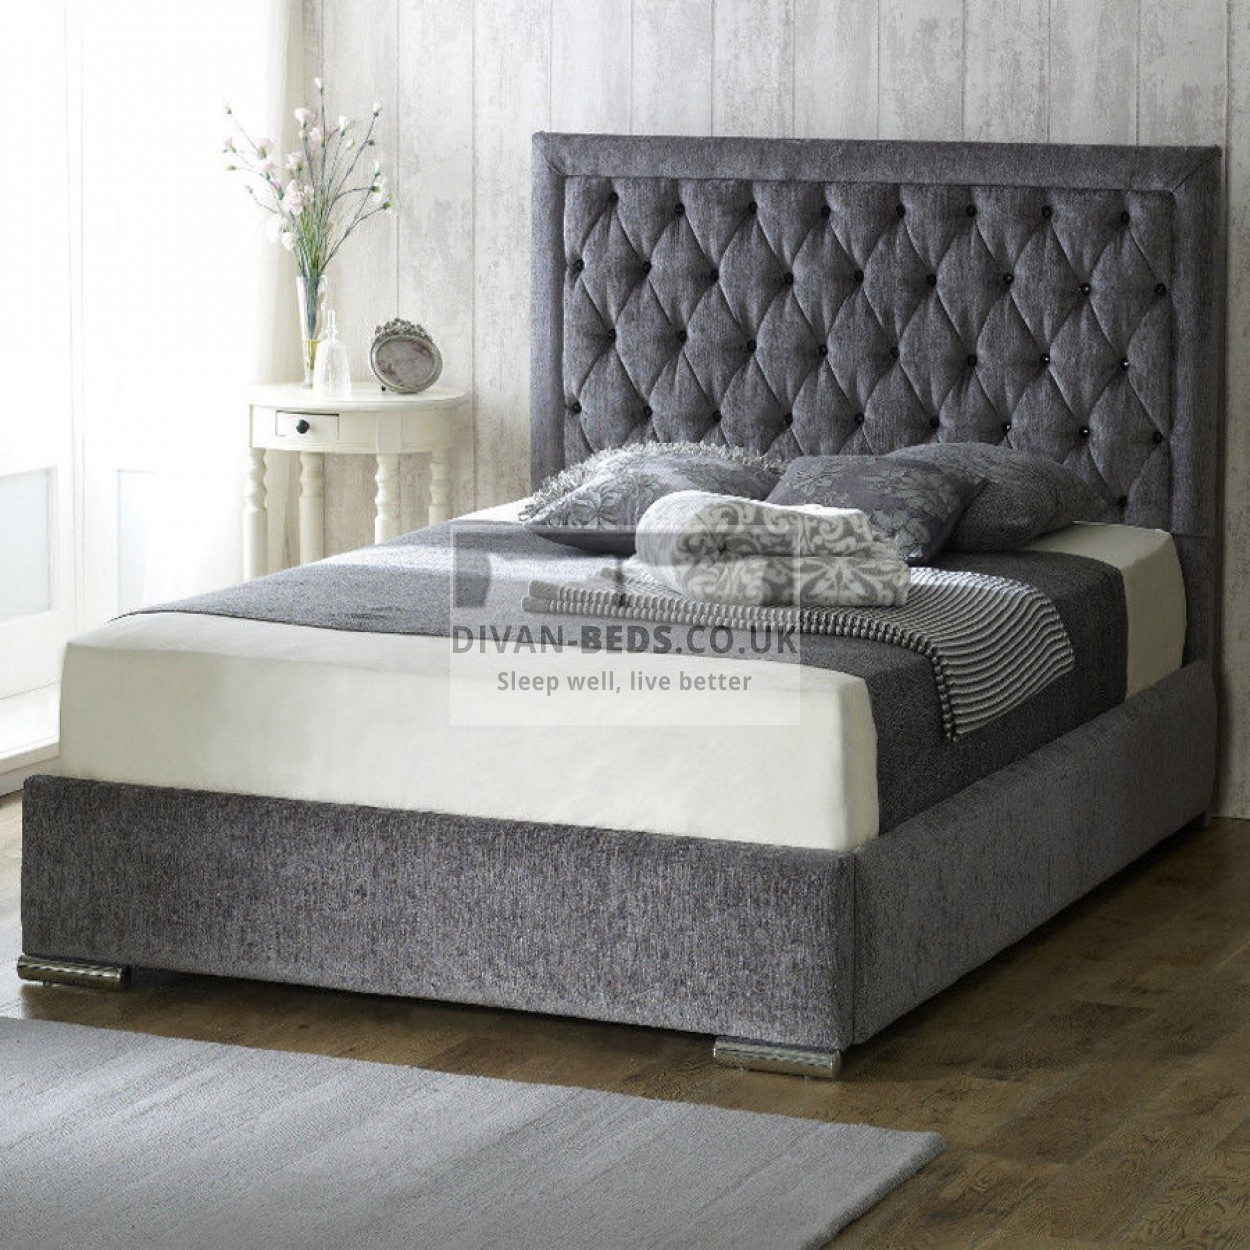 Belinha fabric upholstered bed frame guaranteed cheapest for The cheapest bed